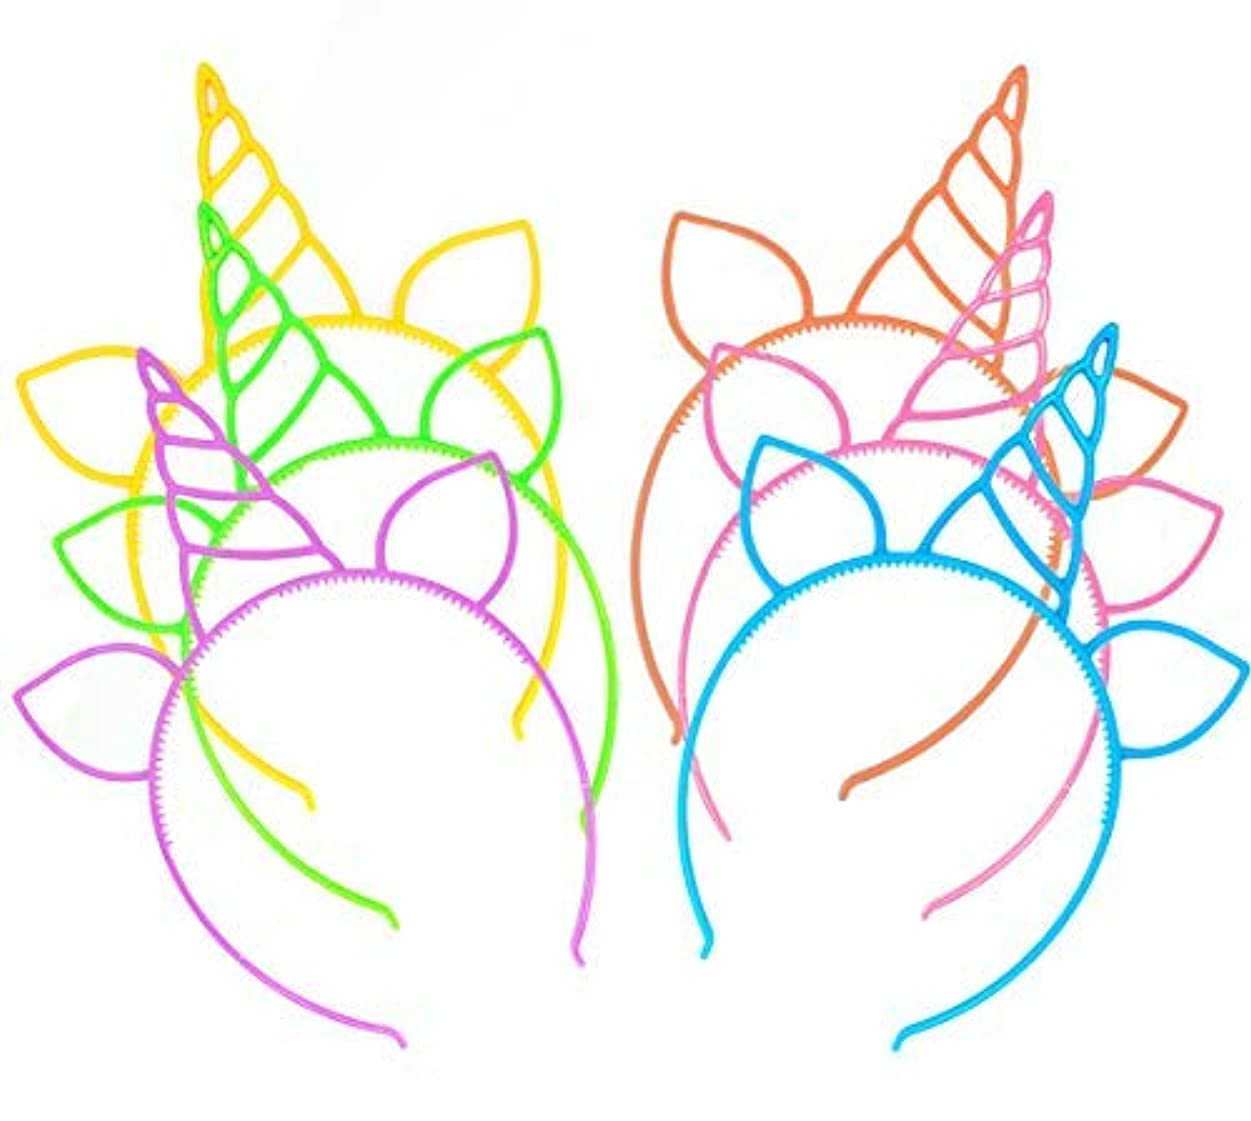 グリース待つ従う12 Pcs Unicorn Headbands Theme Birthday Party Favor Supplies Gift Costume [並行輸入品]